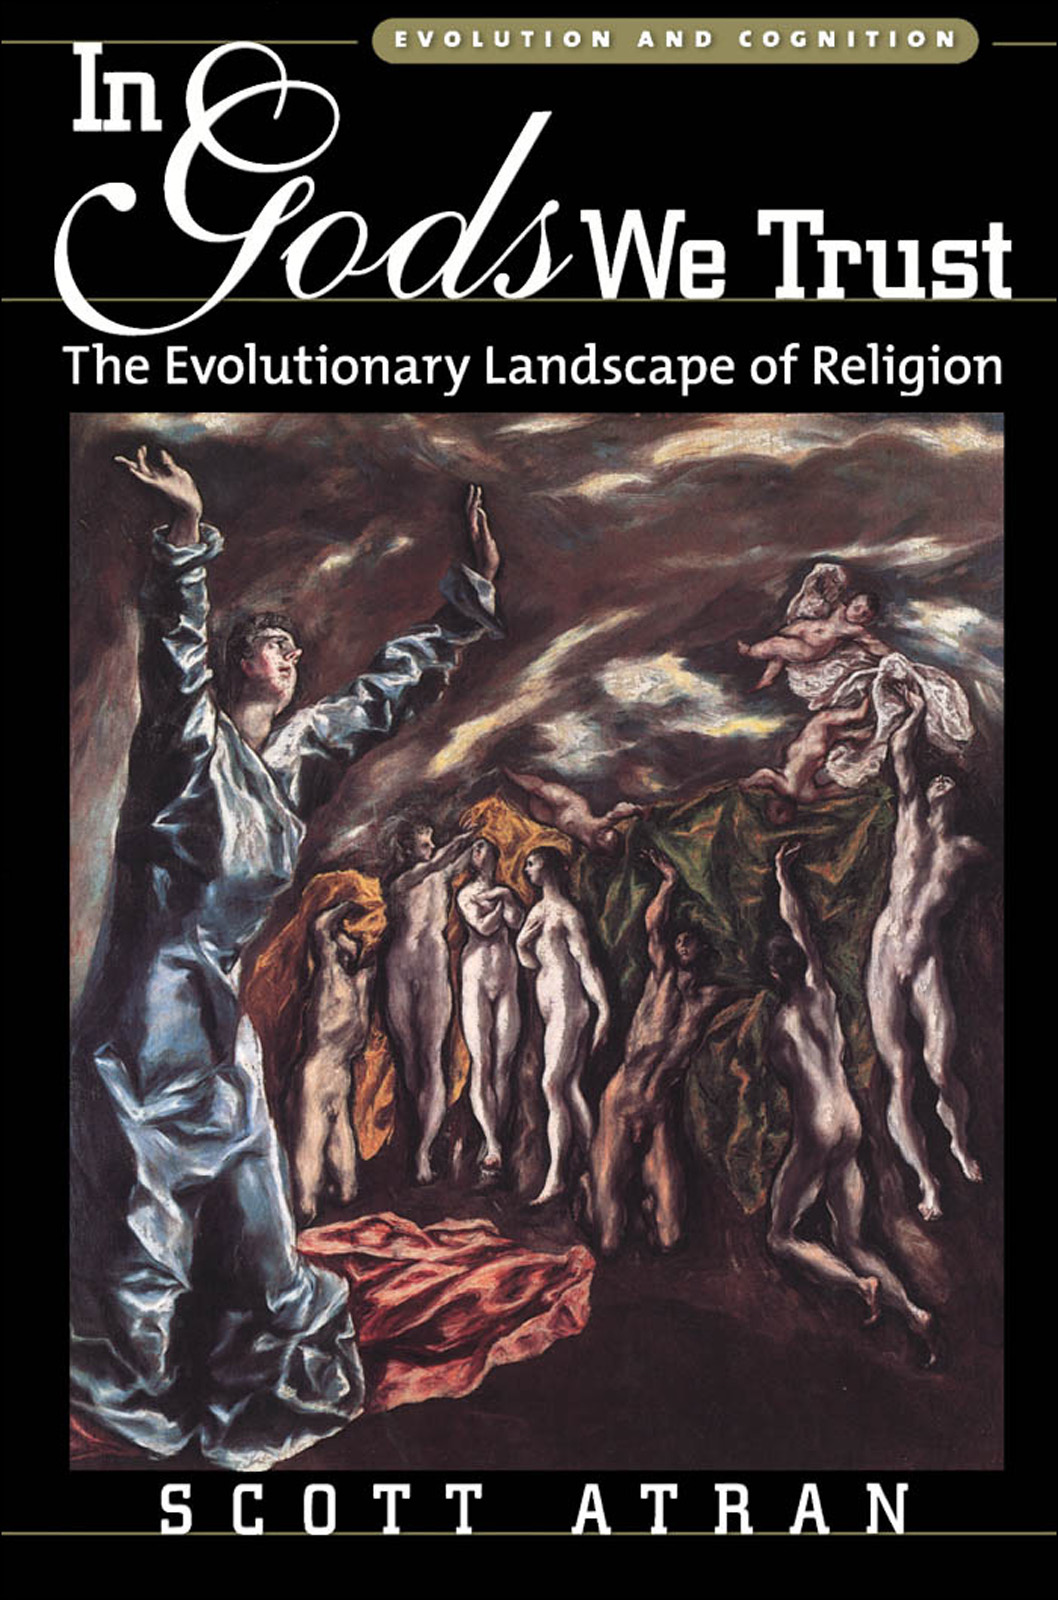 In Gods We Trust:The Evolutionary Landscape of Religion